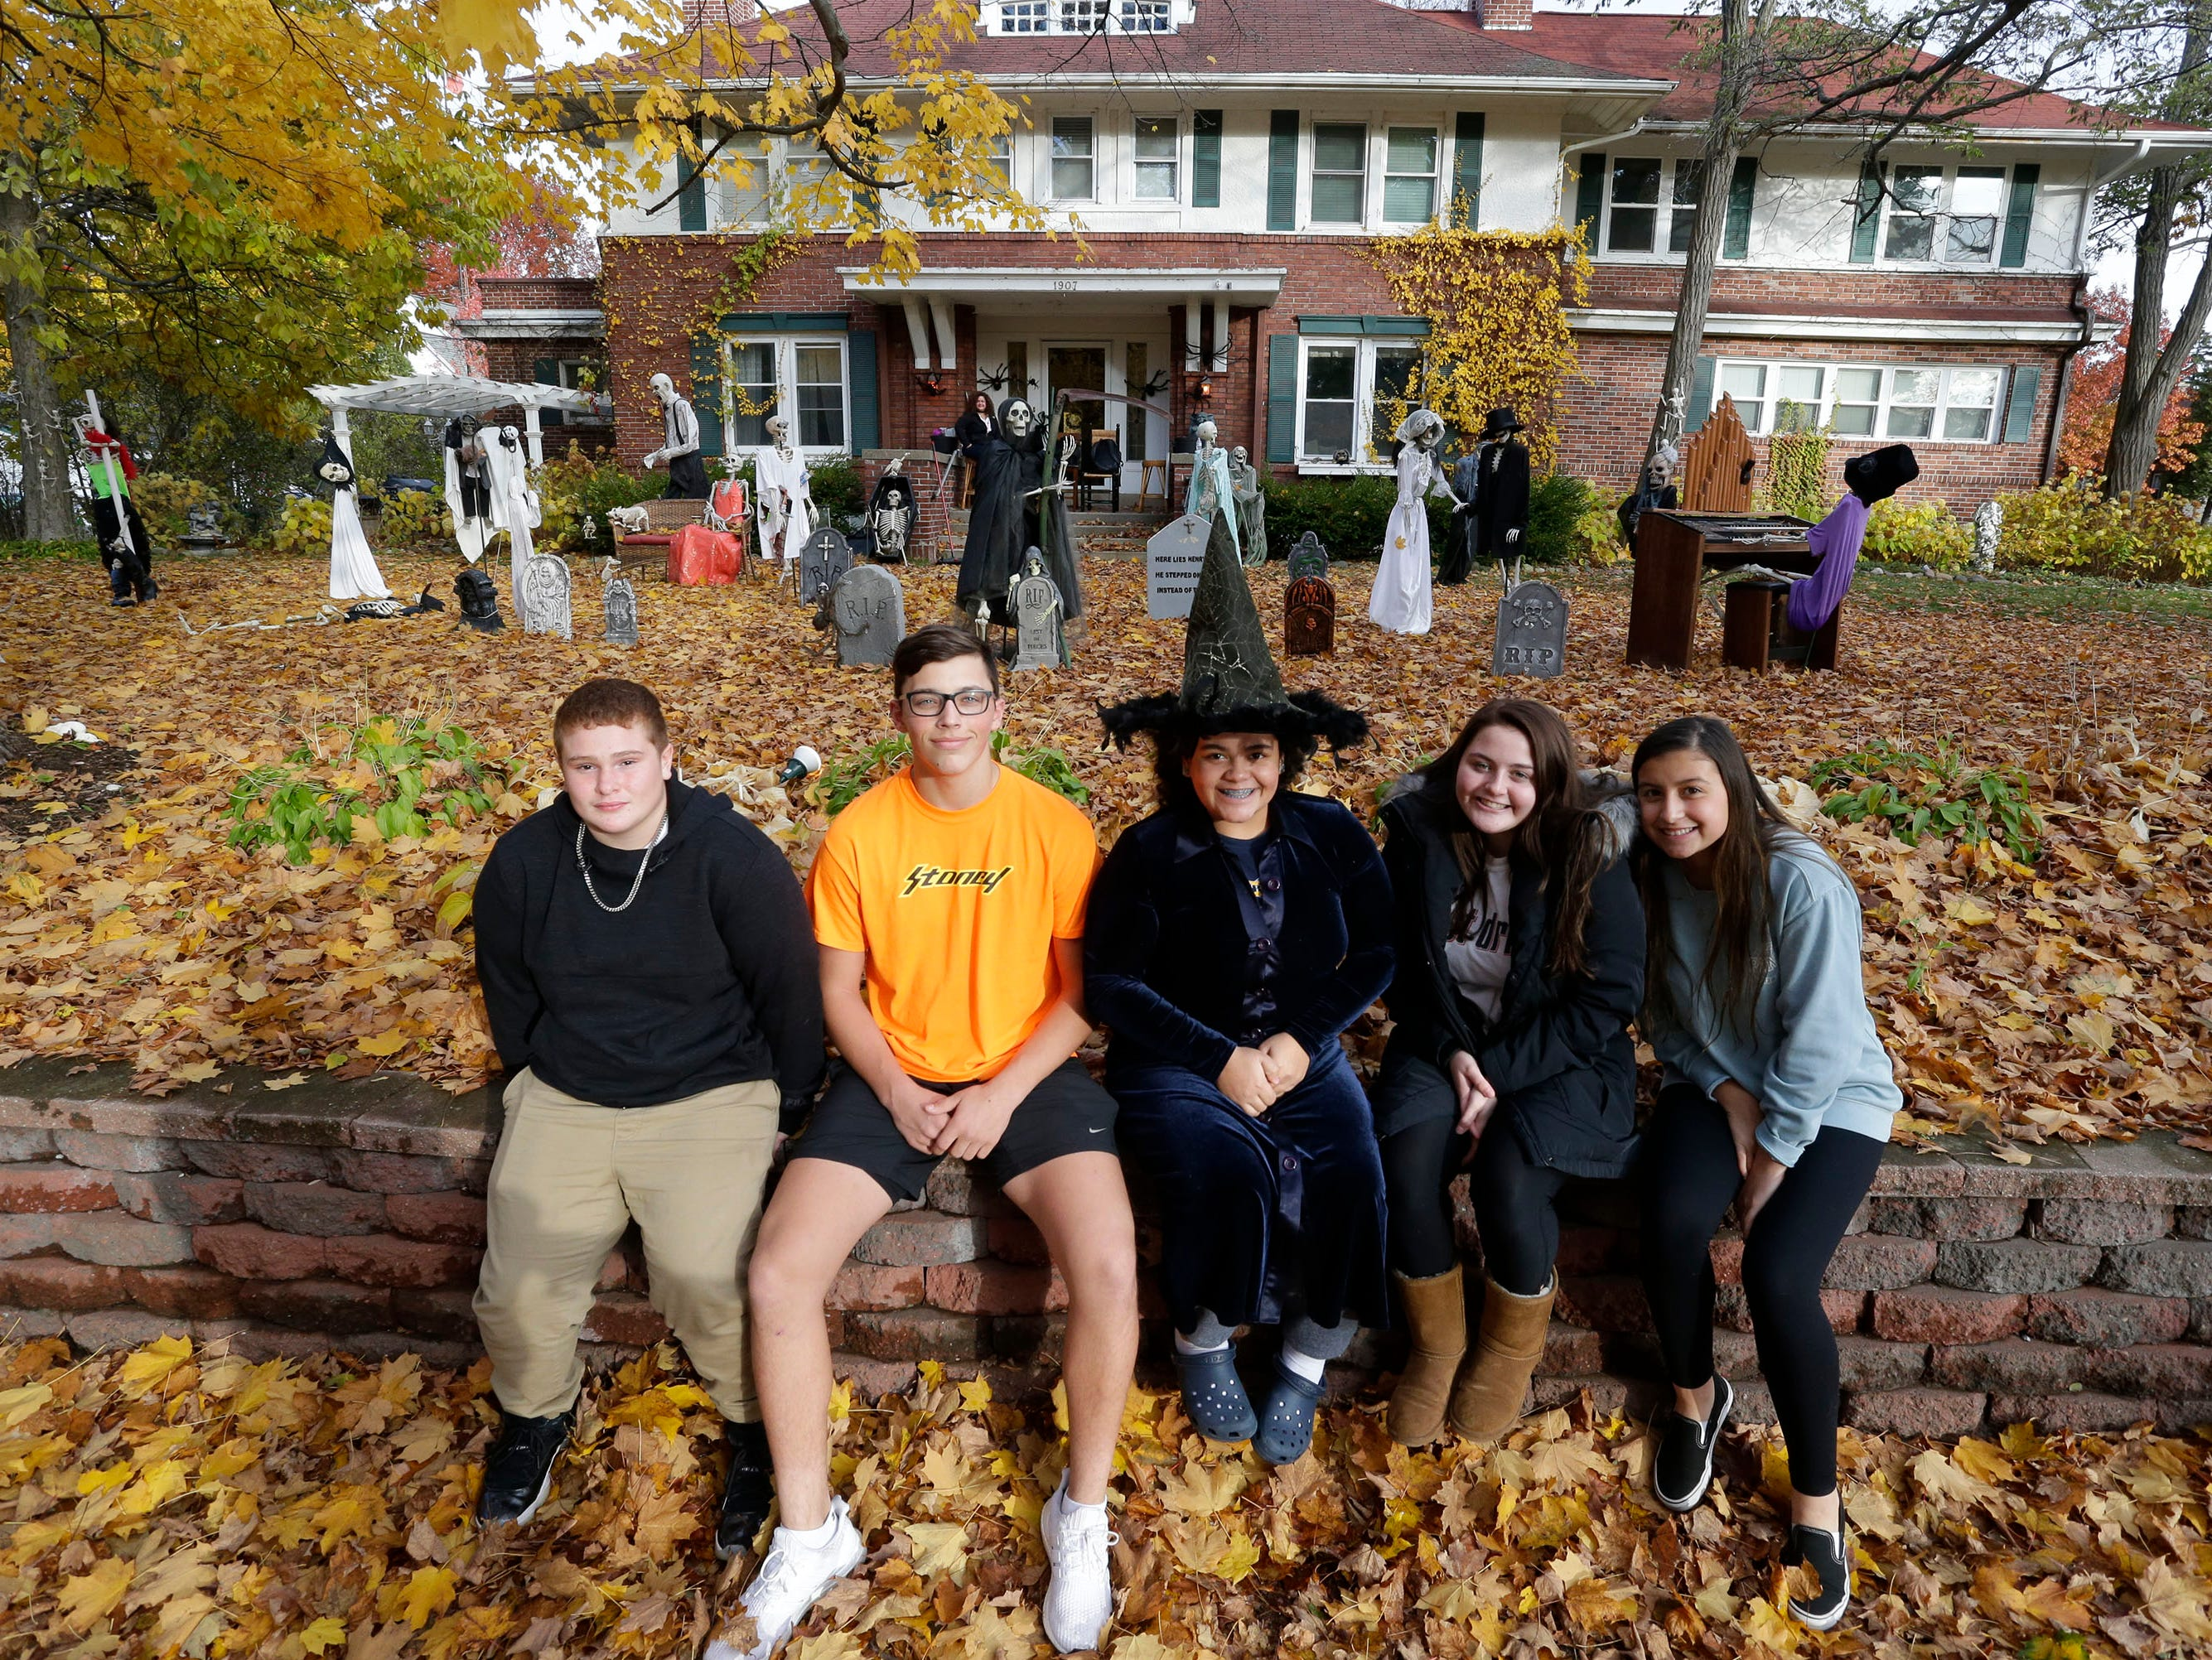 Getting ready for Trick or Treat from left are Kyle Wood, Karter Bell, Yanni Rivera, Jessica Fritz and Naomi Mendez, , Wednesday, October 31, 2018, in Sheboygan, Wis.  They were going to hand out treats at the Sarah Fritz home.